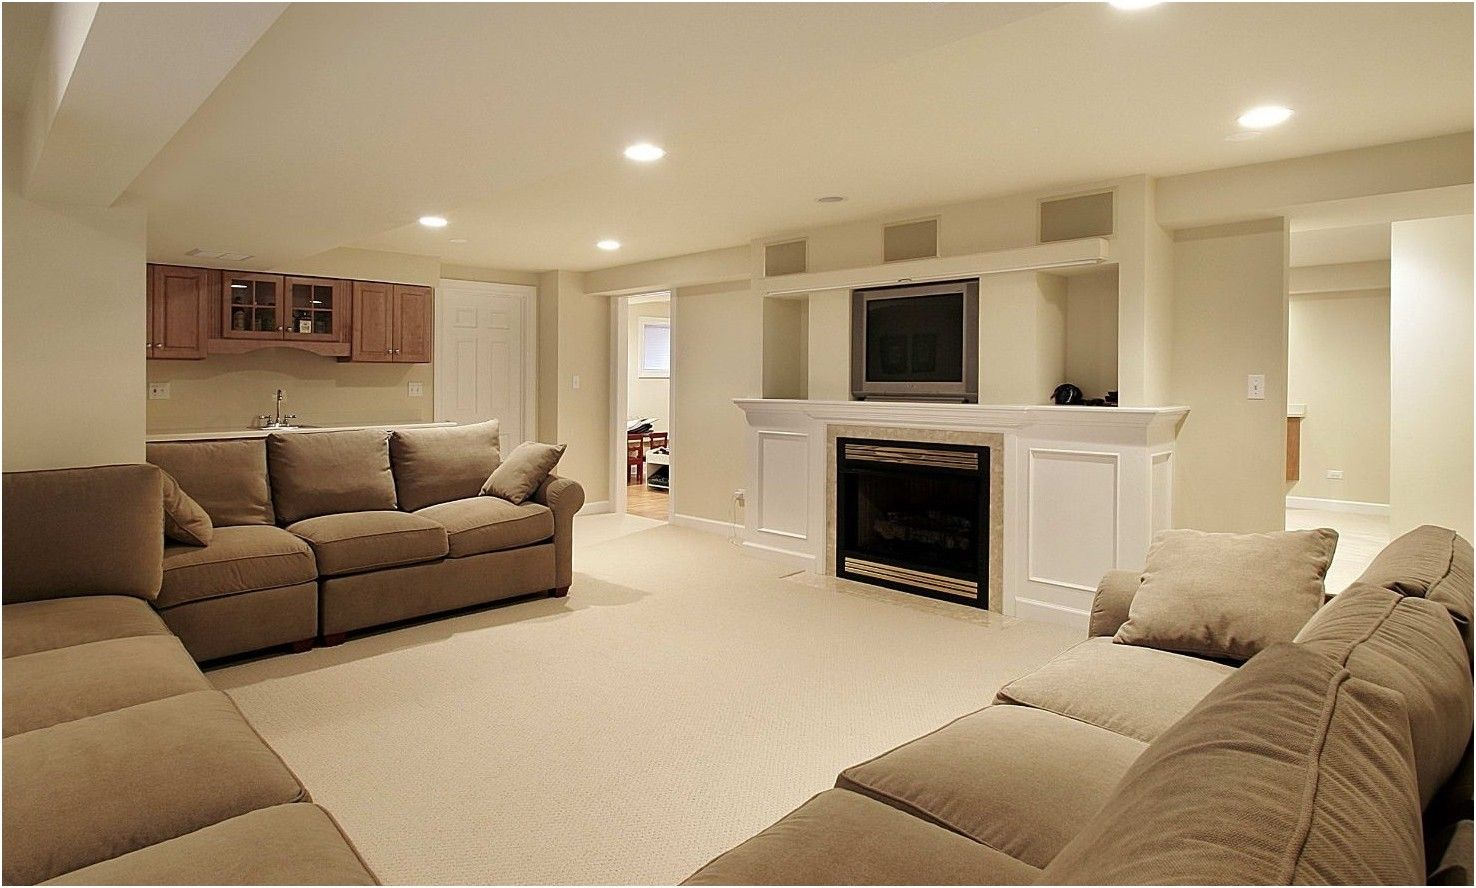 30 Basement Remodeling Ideas Inspiration From Reno